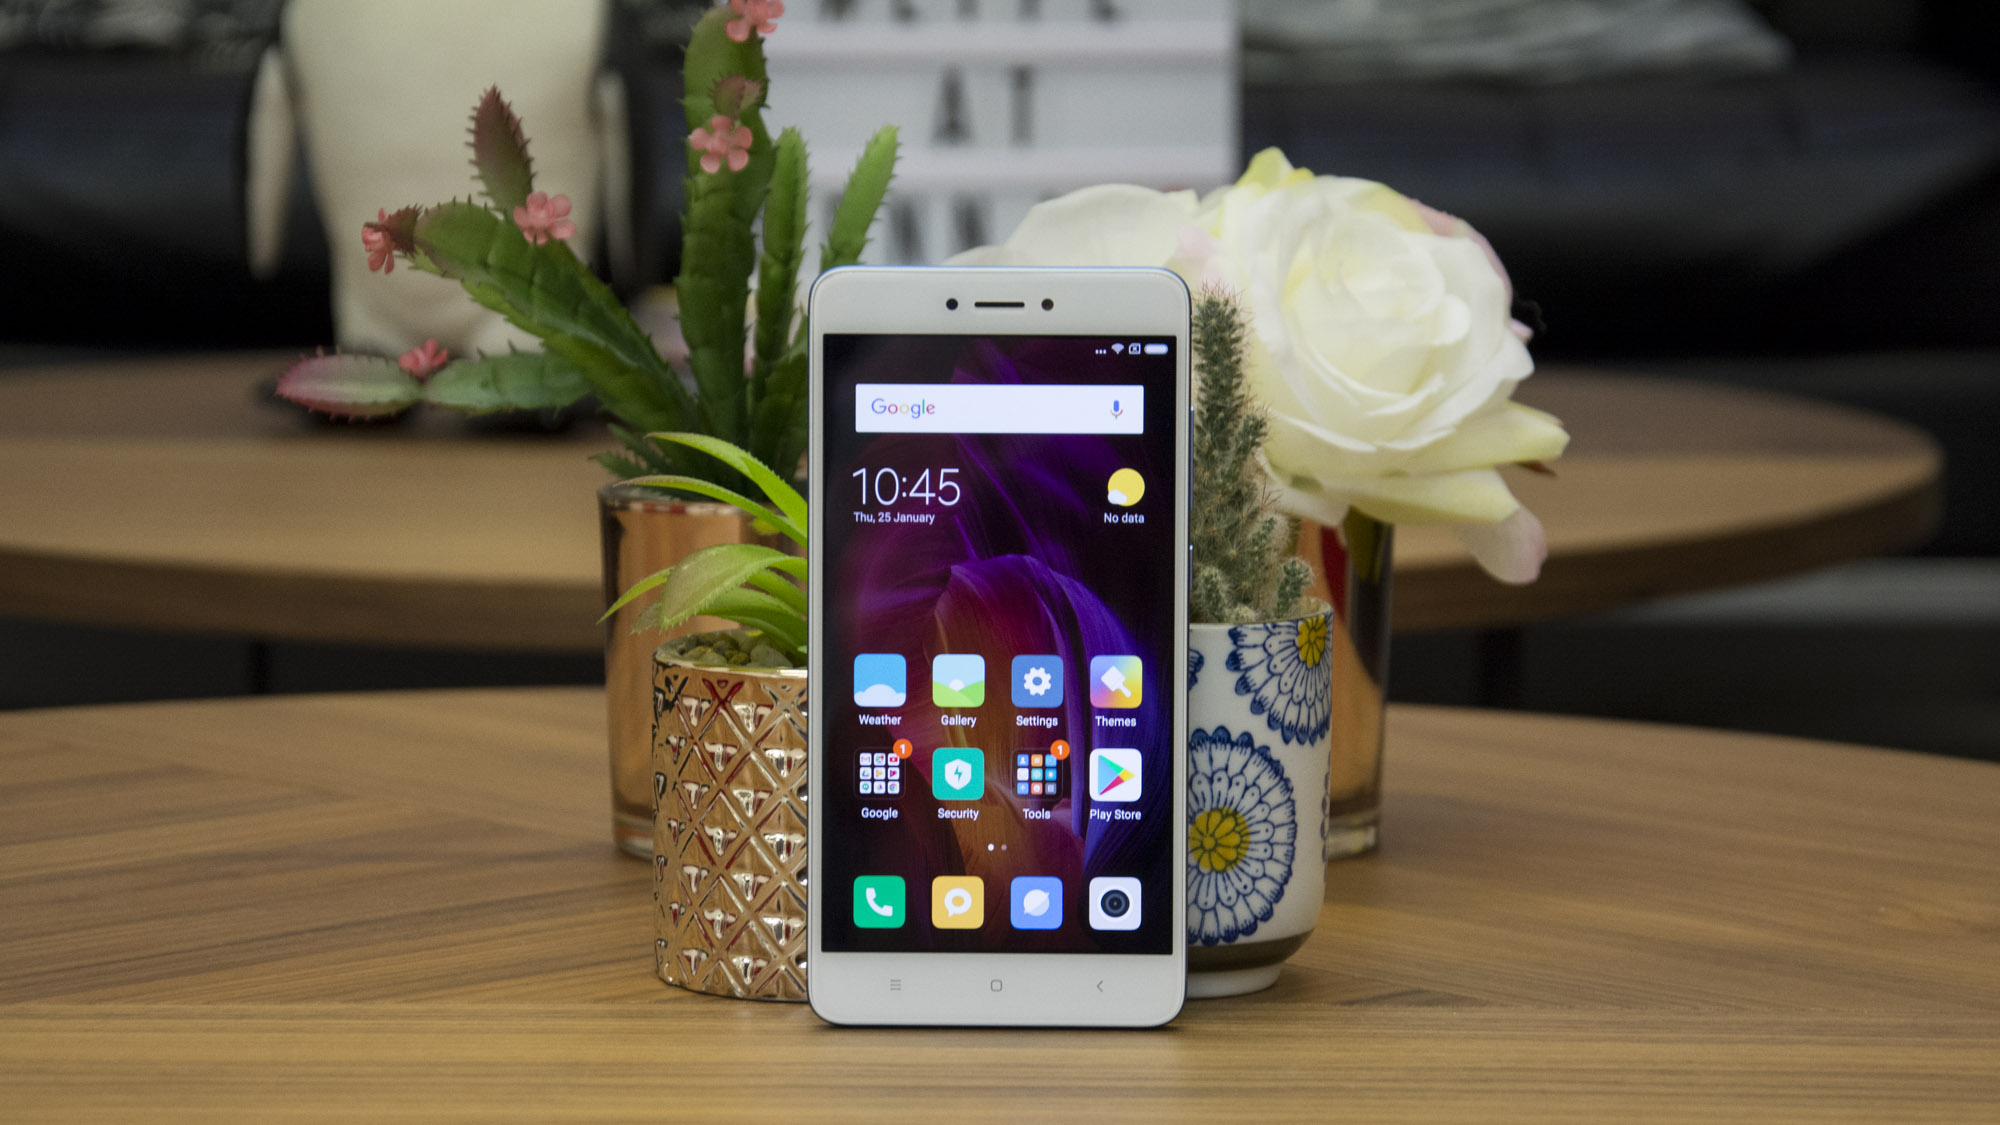 Xiaomi Redmi Note 4x Review The New 150 Smartphone King Glonetech Gold 4 64gb With Its Large 55in Full Hd Display And An Fingerprint Sensor Has One Of Most Impressive Specifications You Can Find In A Sub